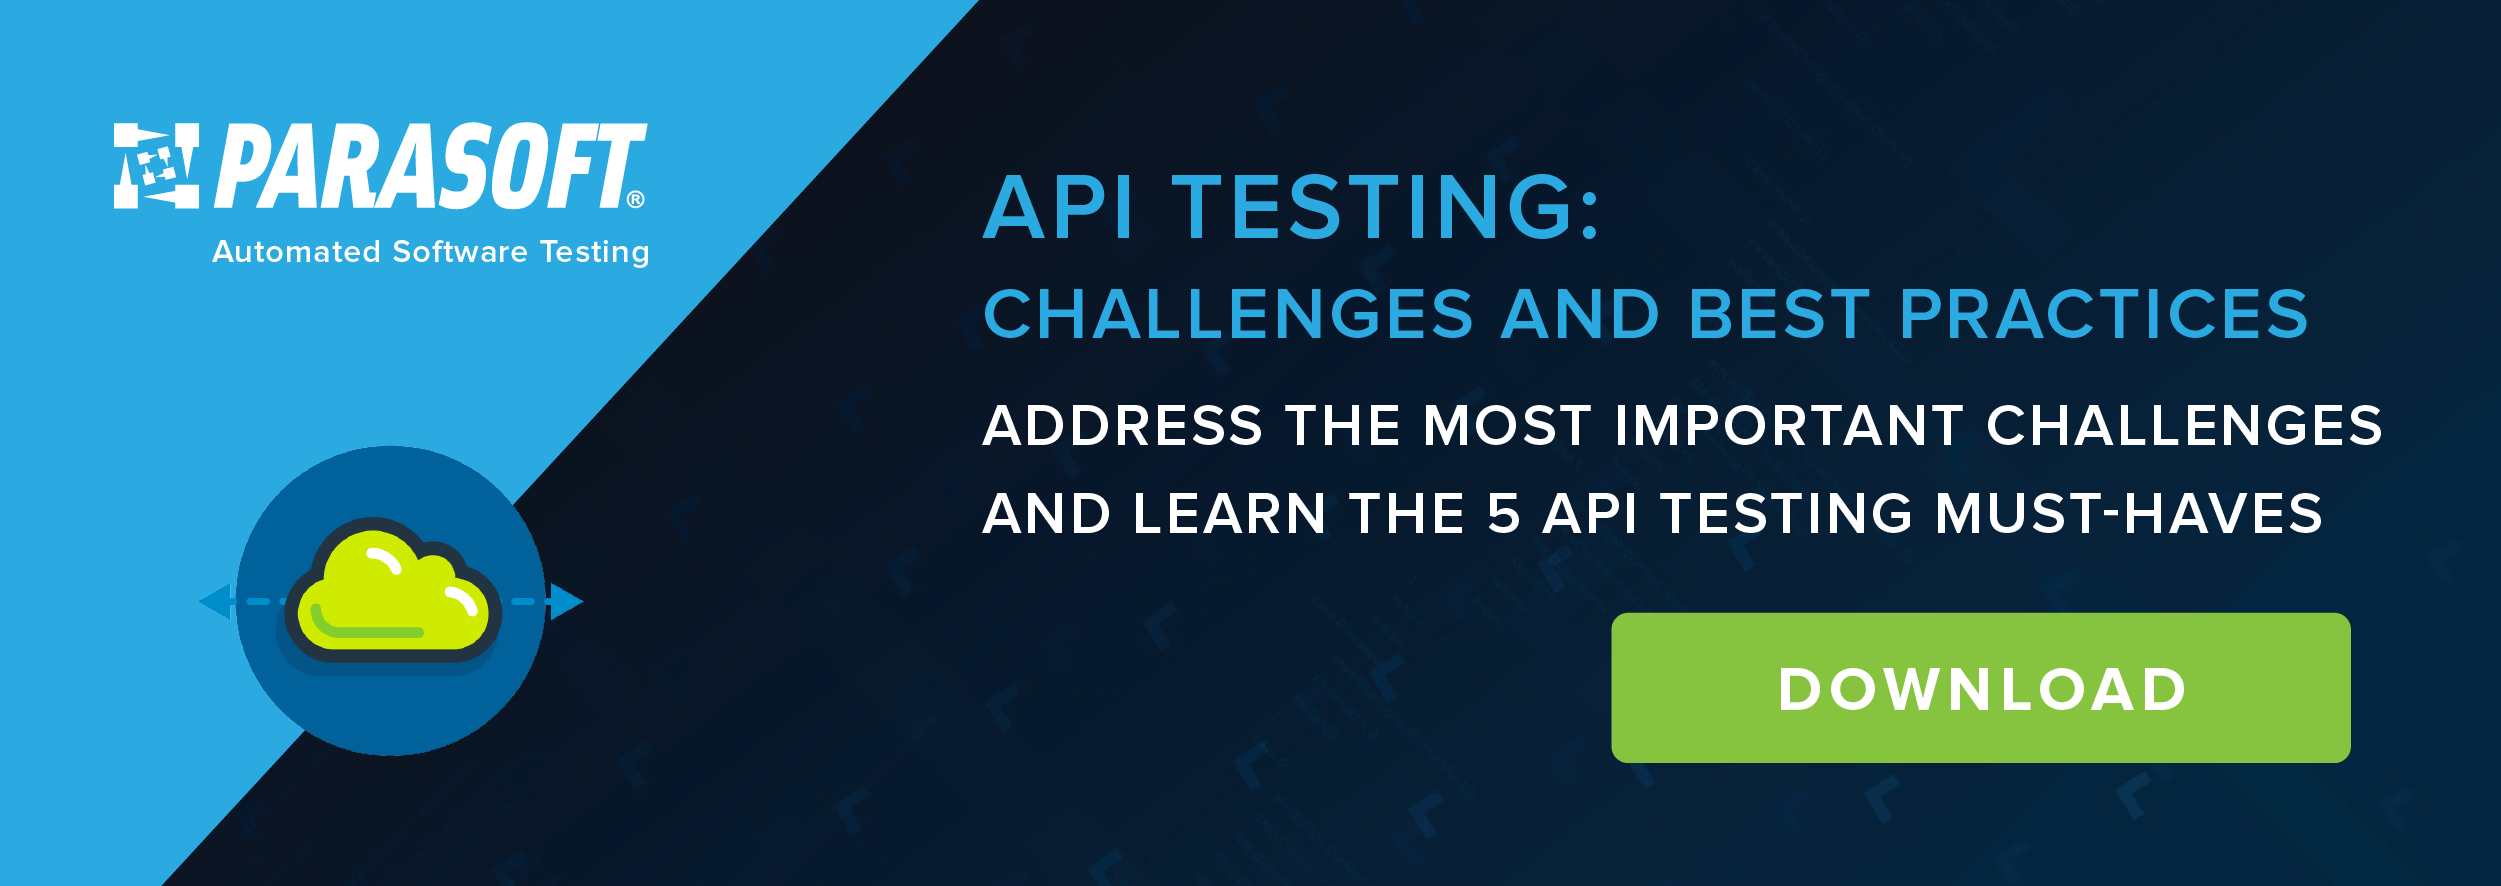 https://alm.parasoft.com/api-testing-challenges-and-best-practices